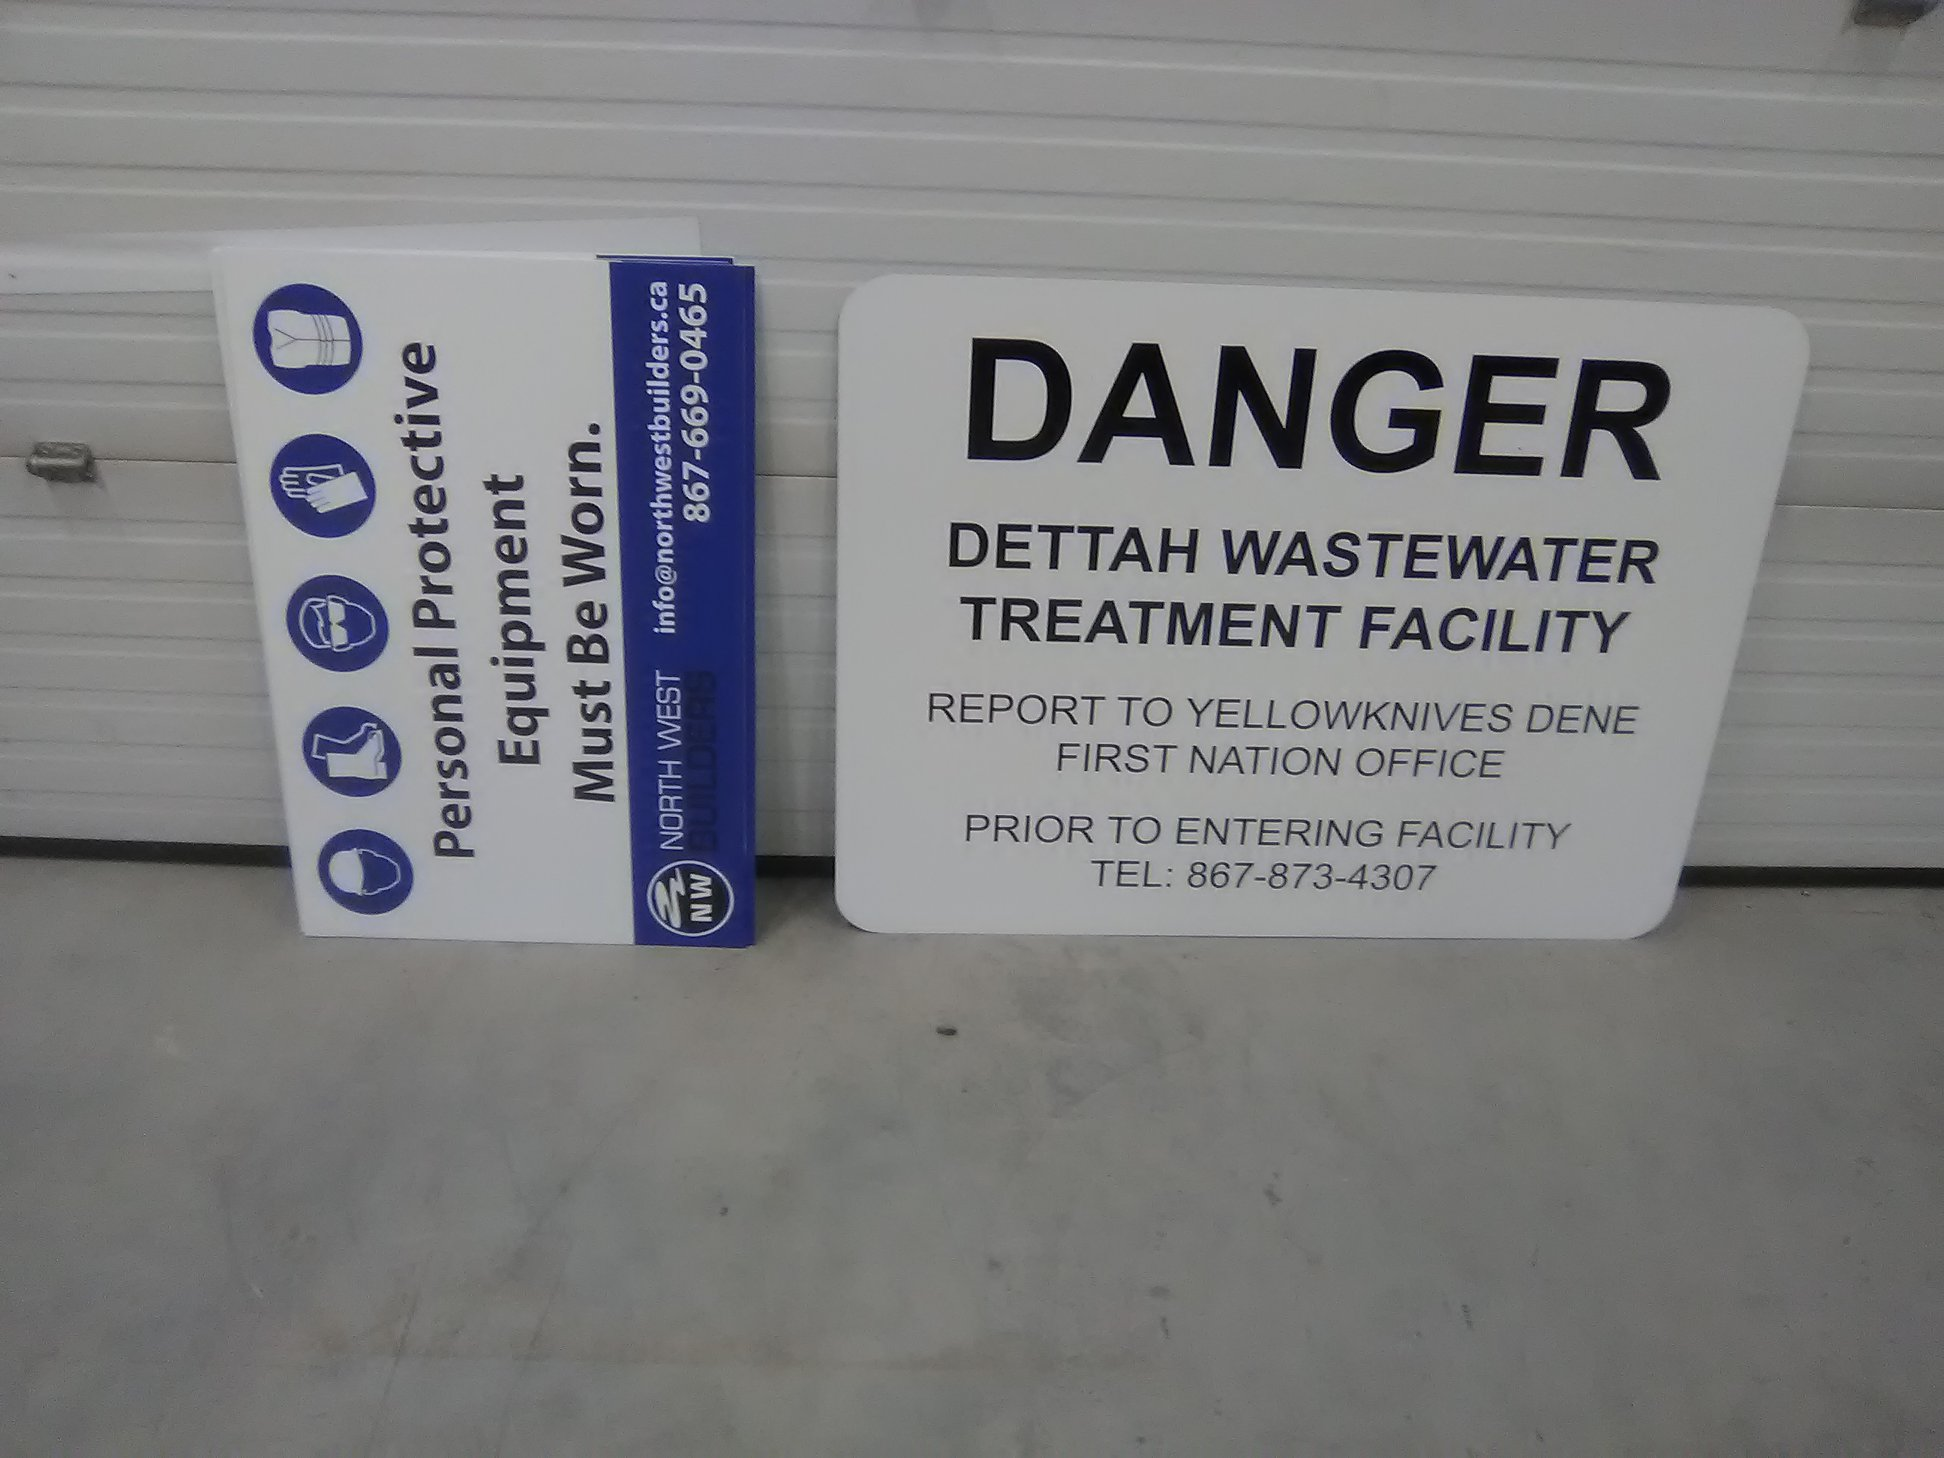 Dettah Wastewater Treatment Facility Exterior Signage